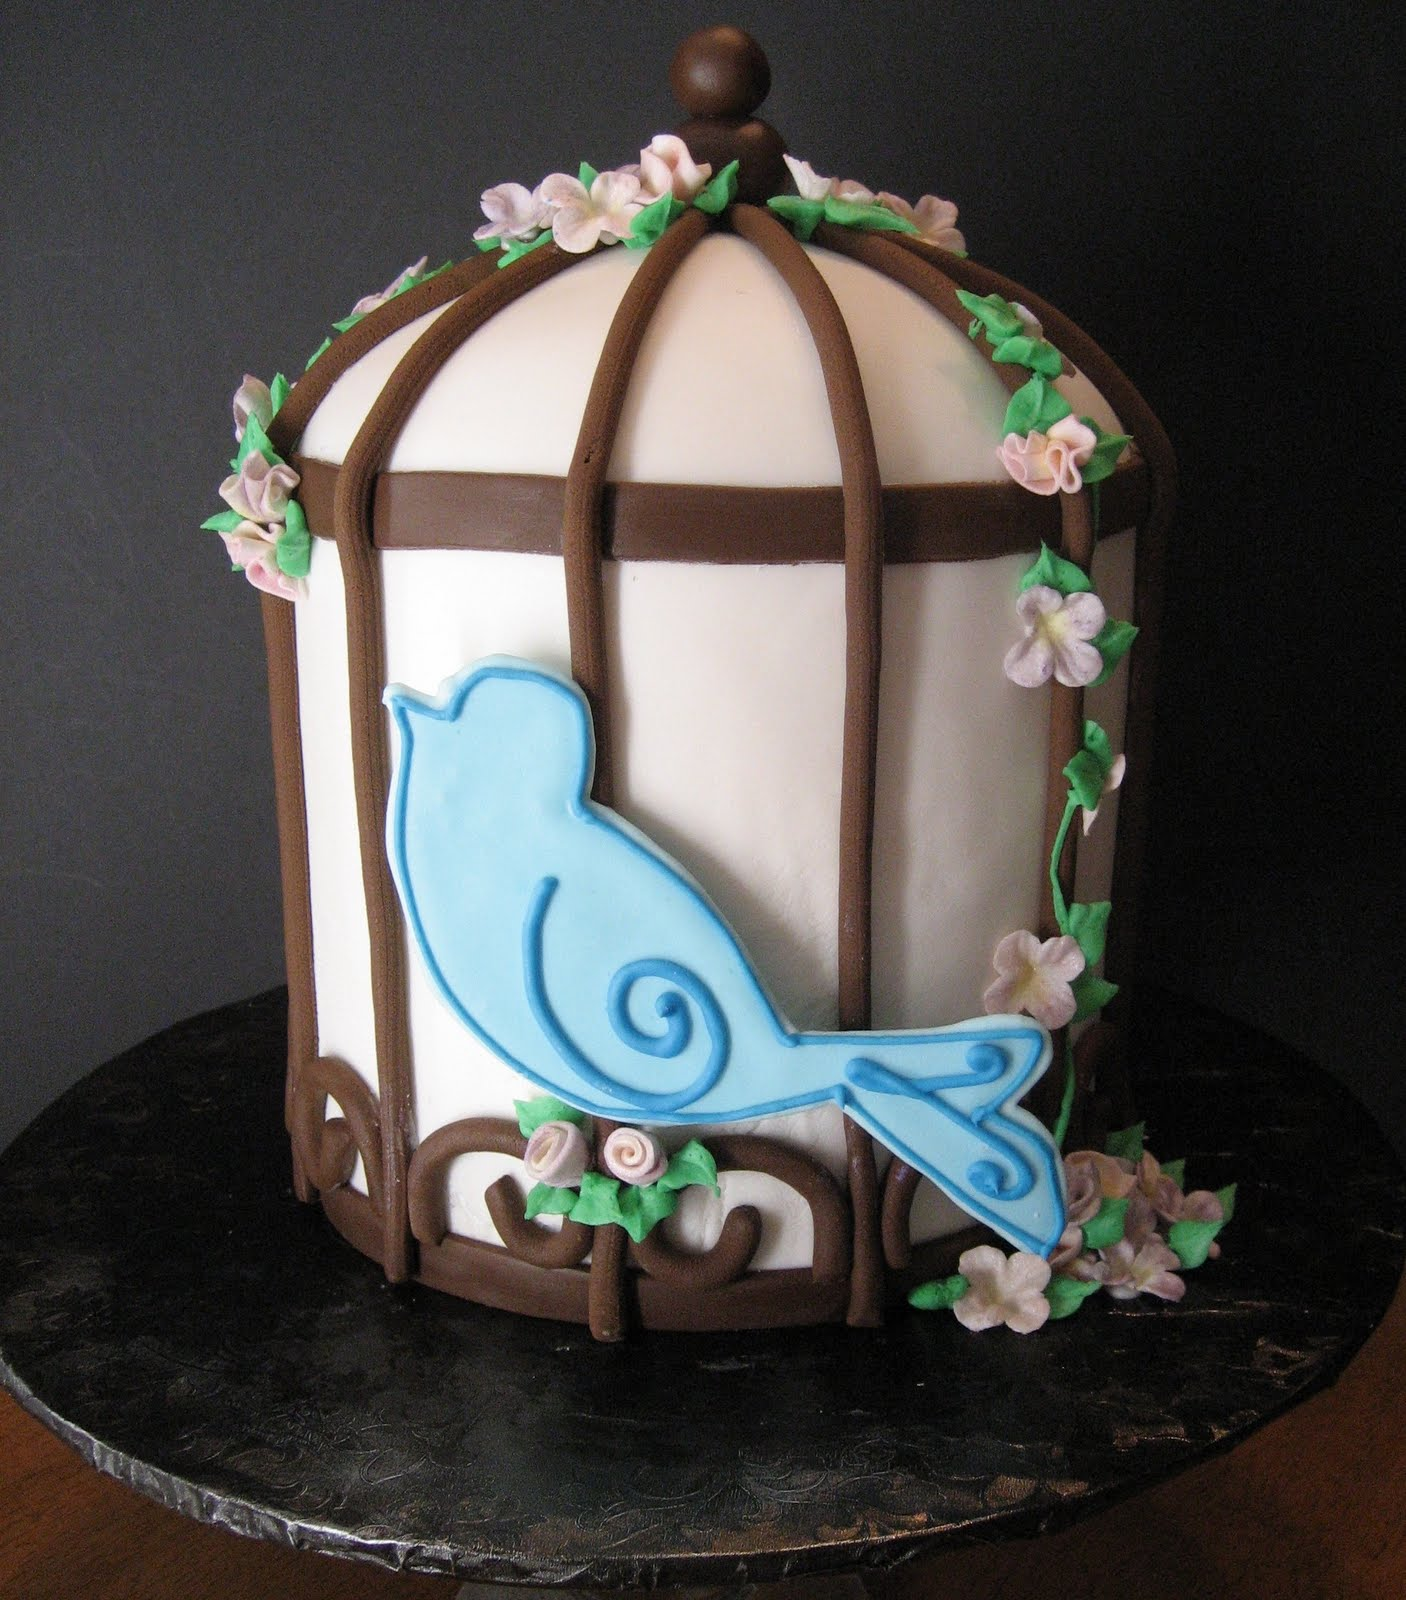 Desserts by Dawn: Birdcage for Marcia